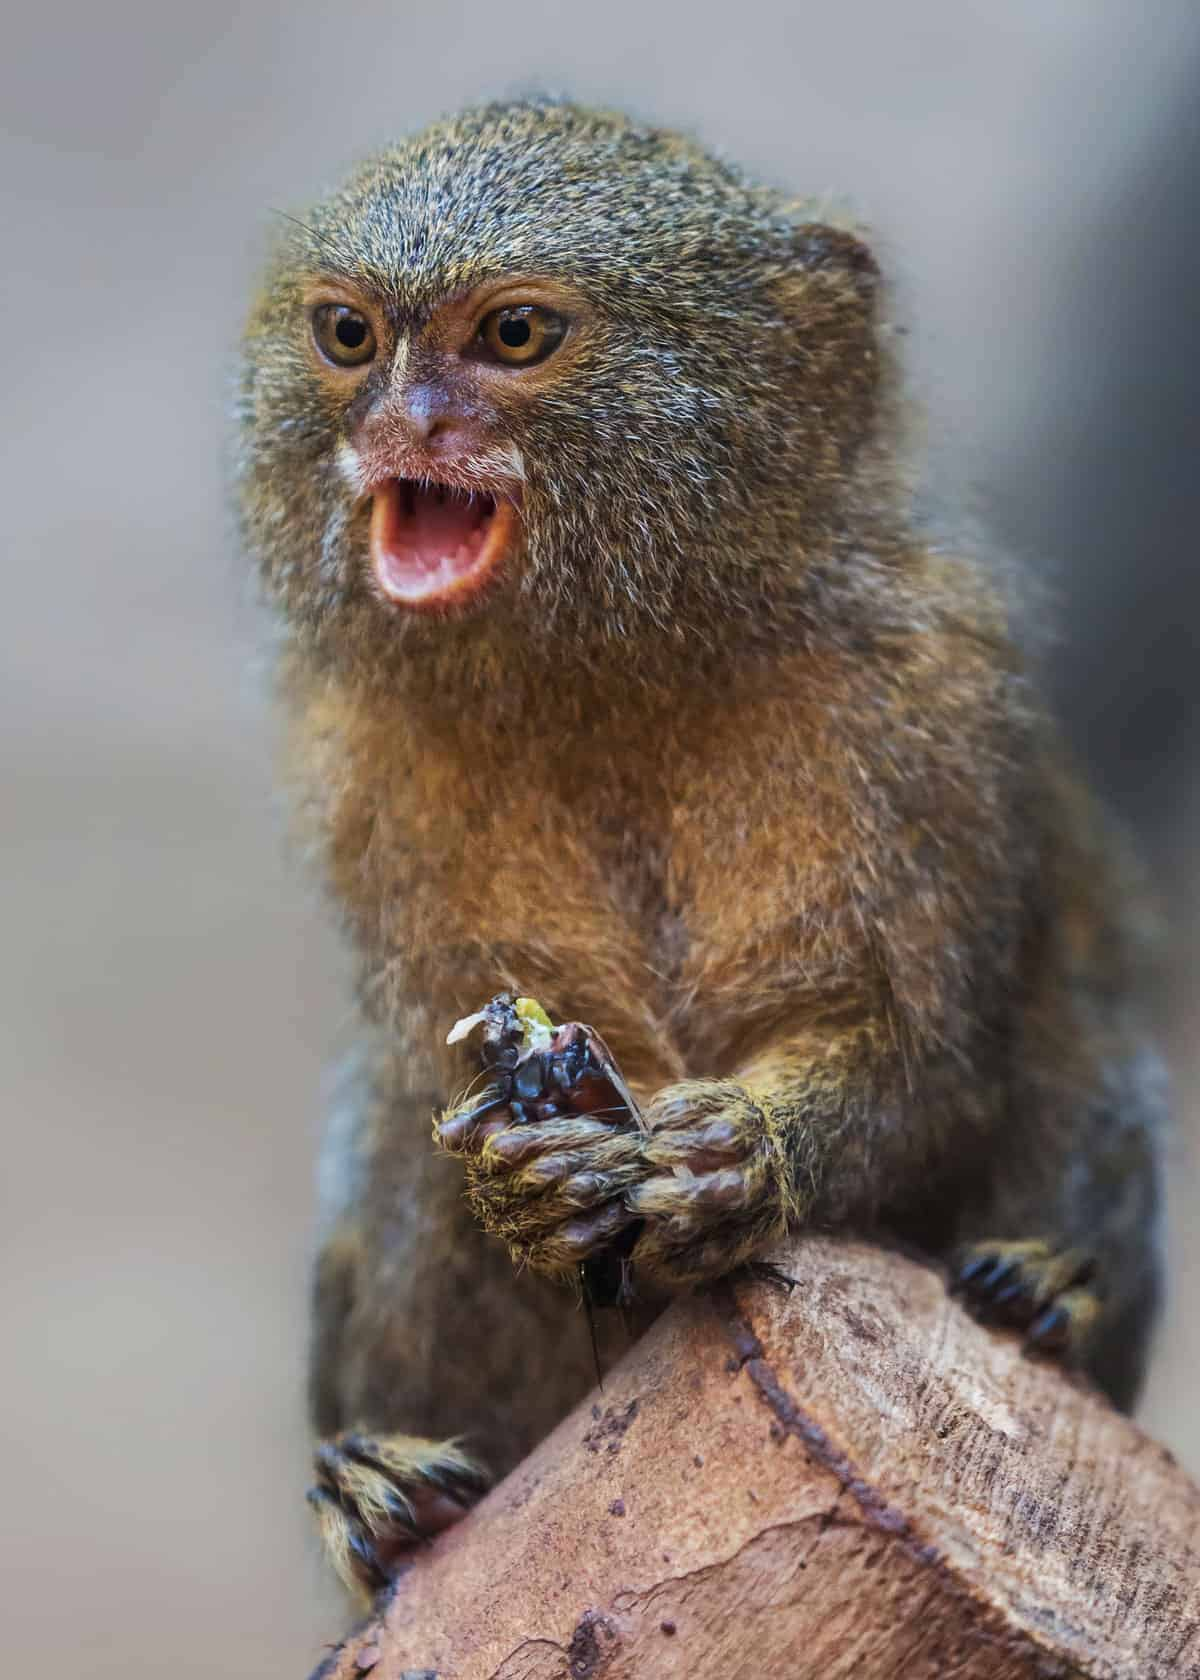 What is a marmoset